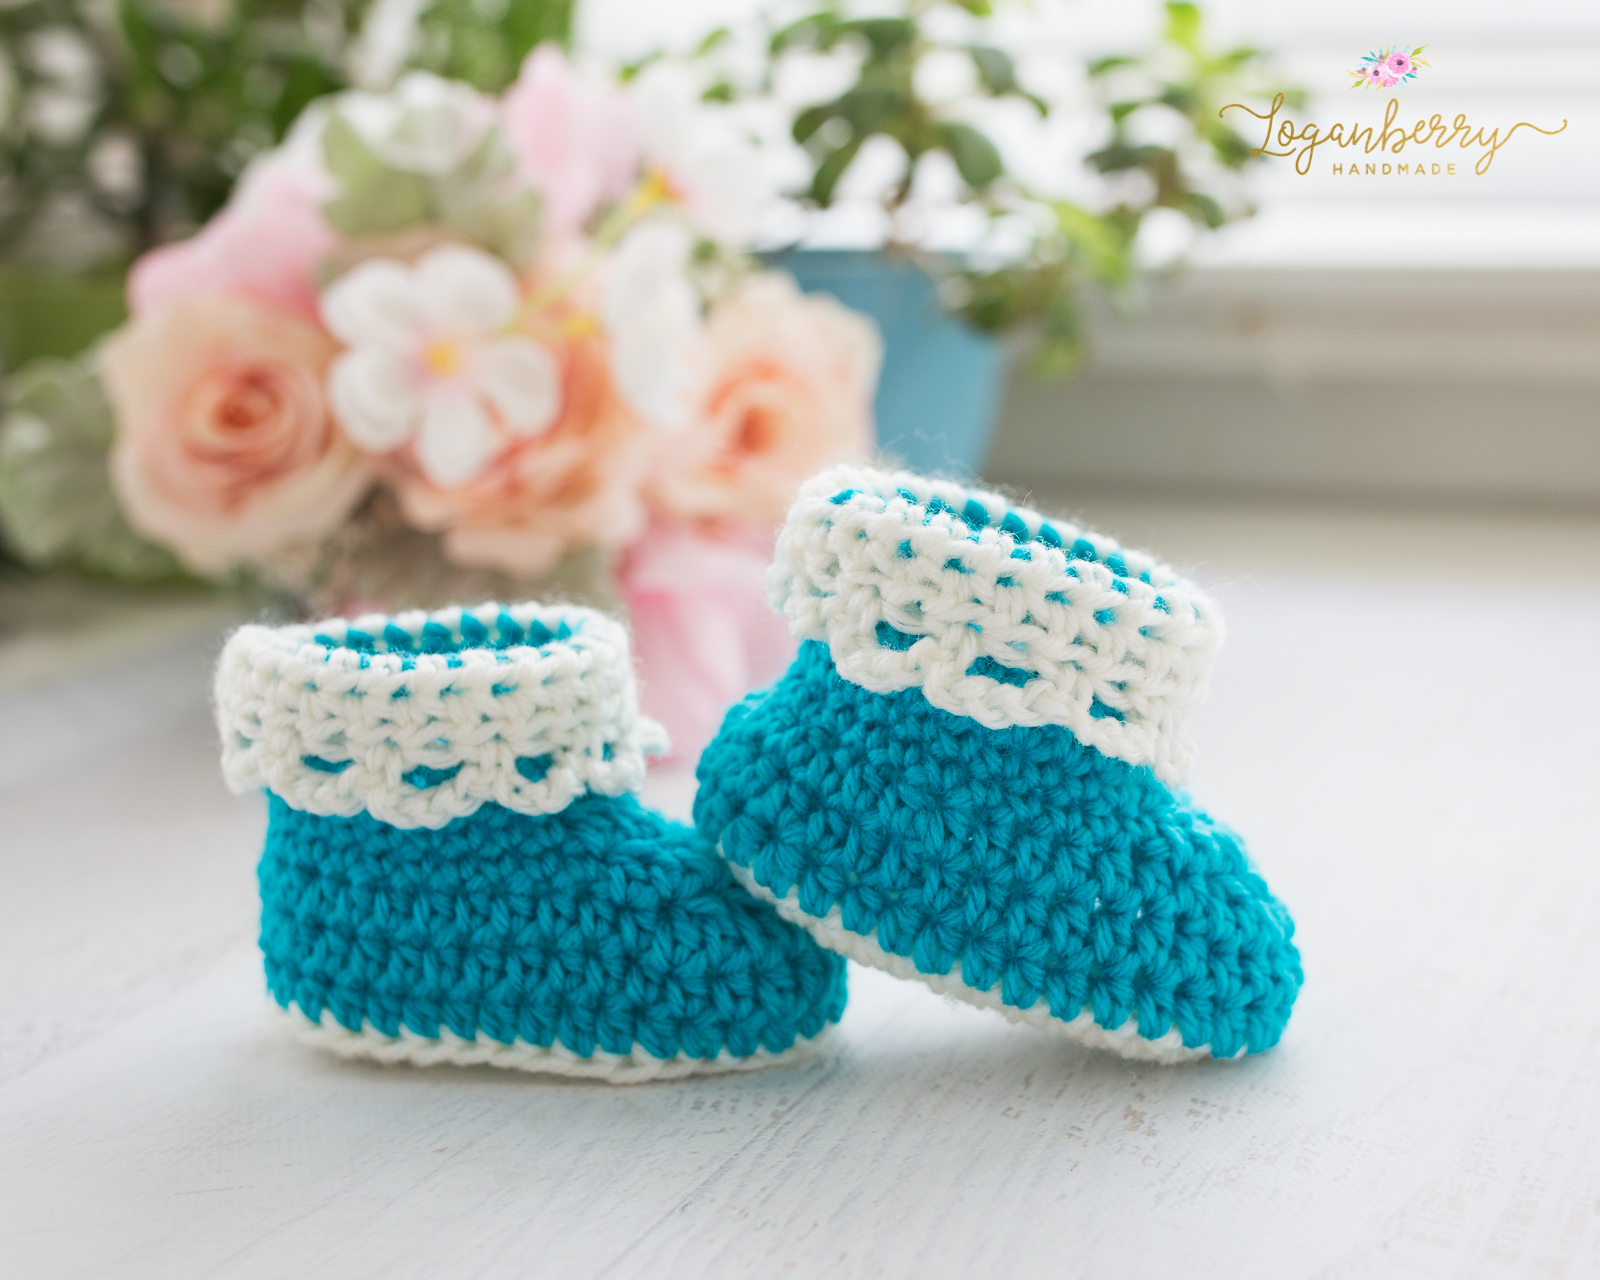 Lace-Trim Baby Booties ? Free Crochet Pattern Loganberry ...